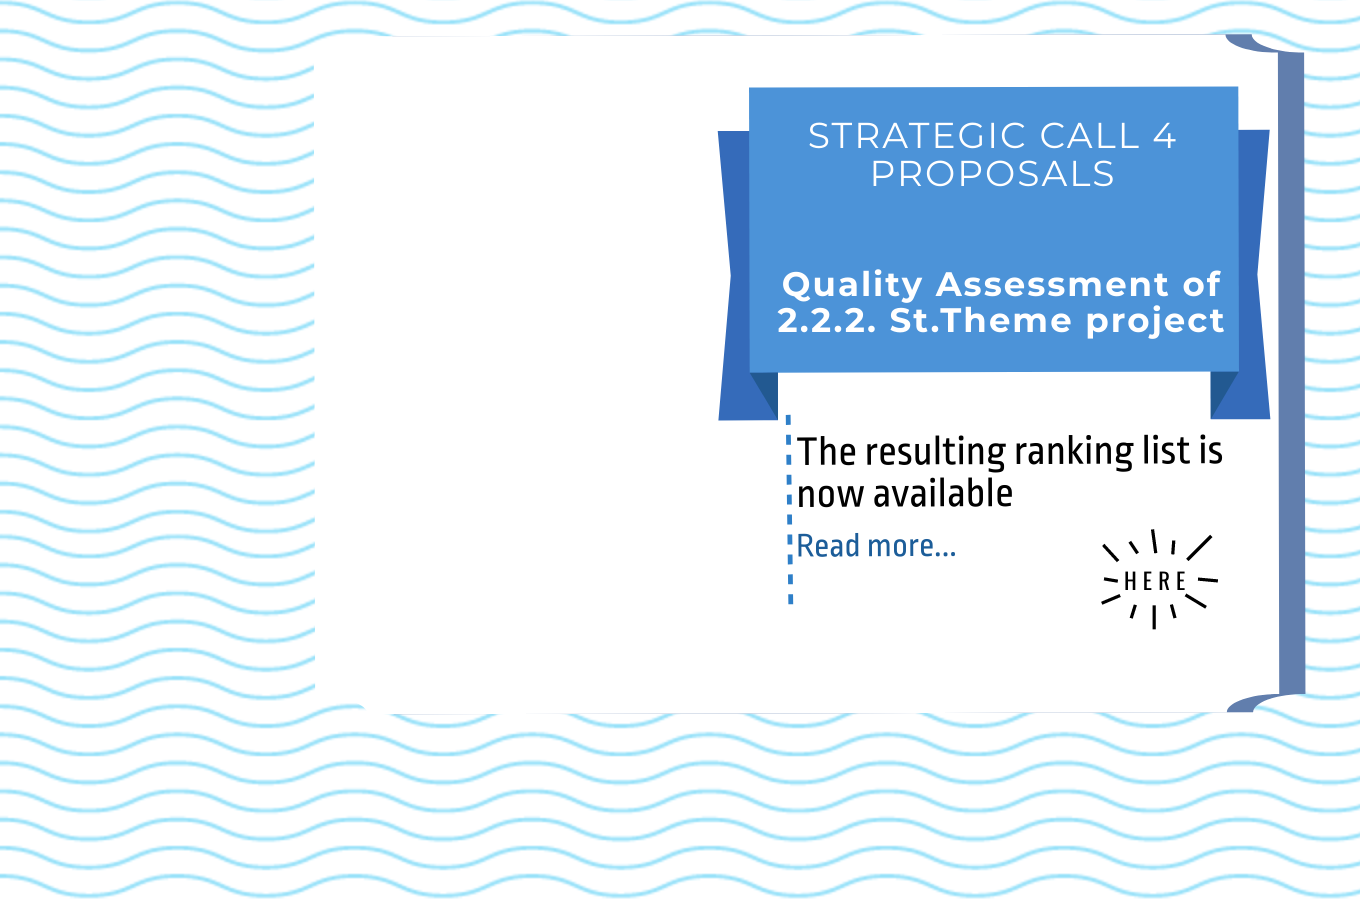 Quality assessment of the 2.2.2. Strategic Theme Project